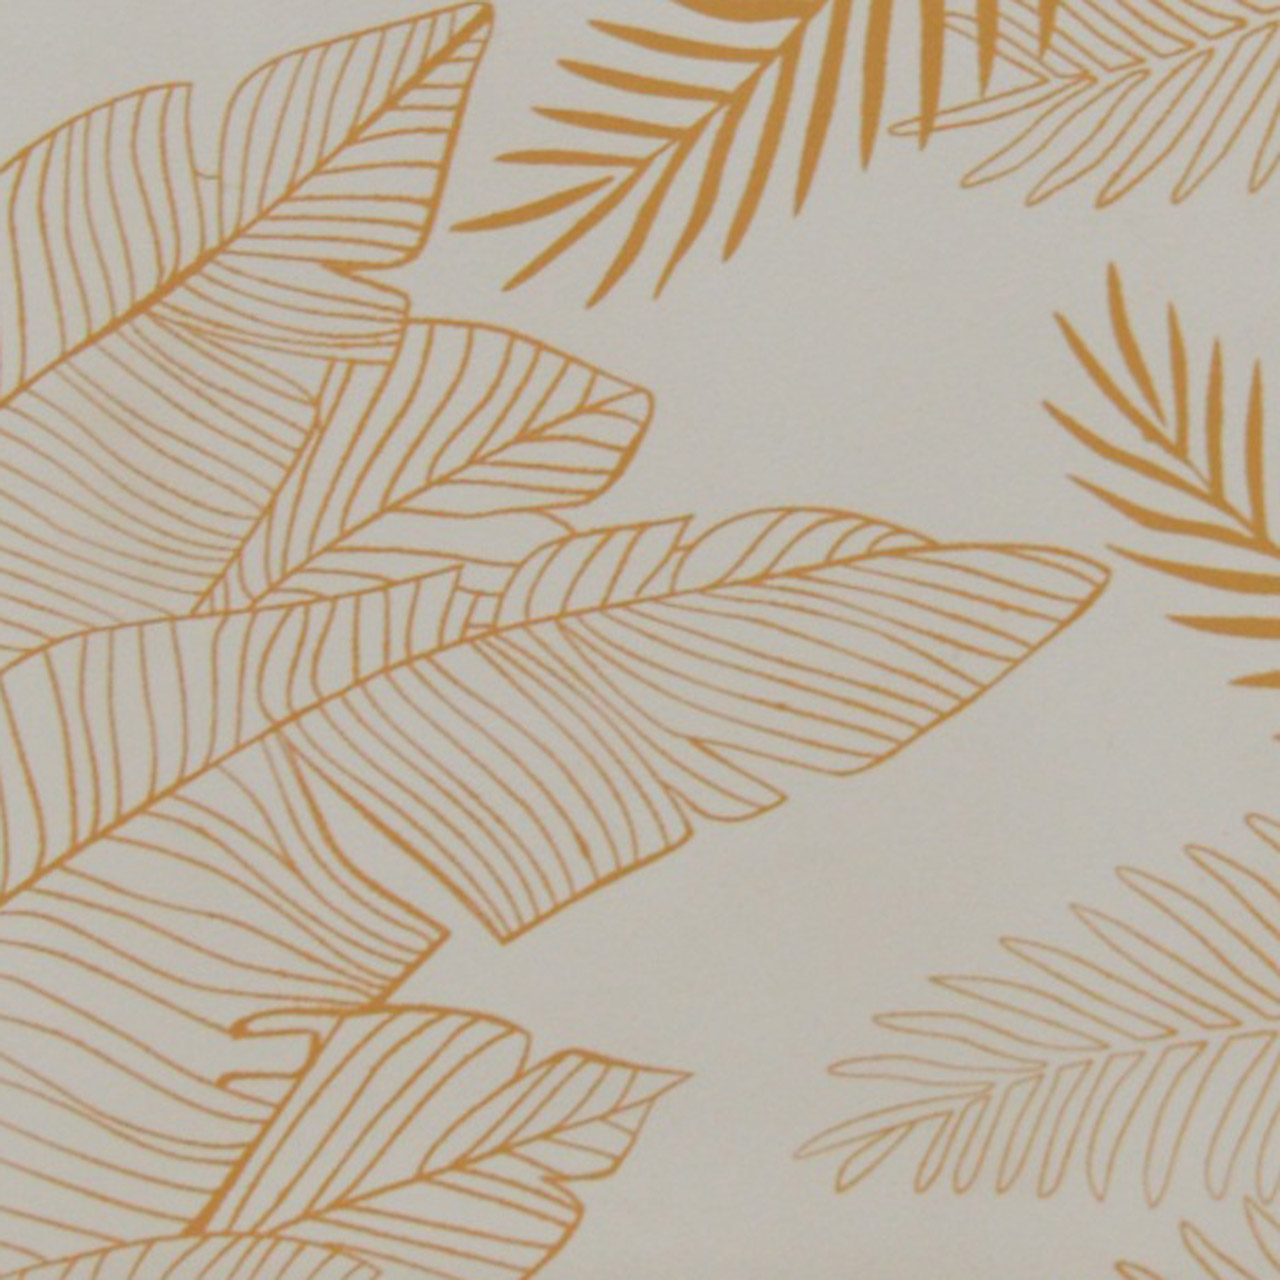 GOLDEN LEAF SCREEN PRINT